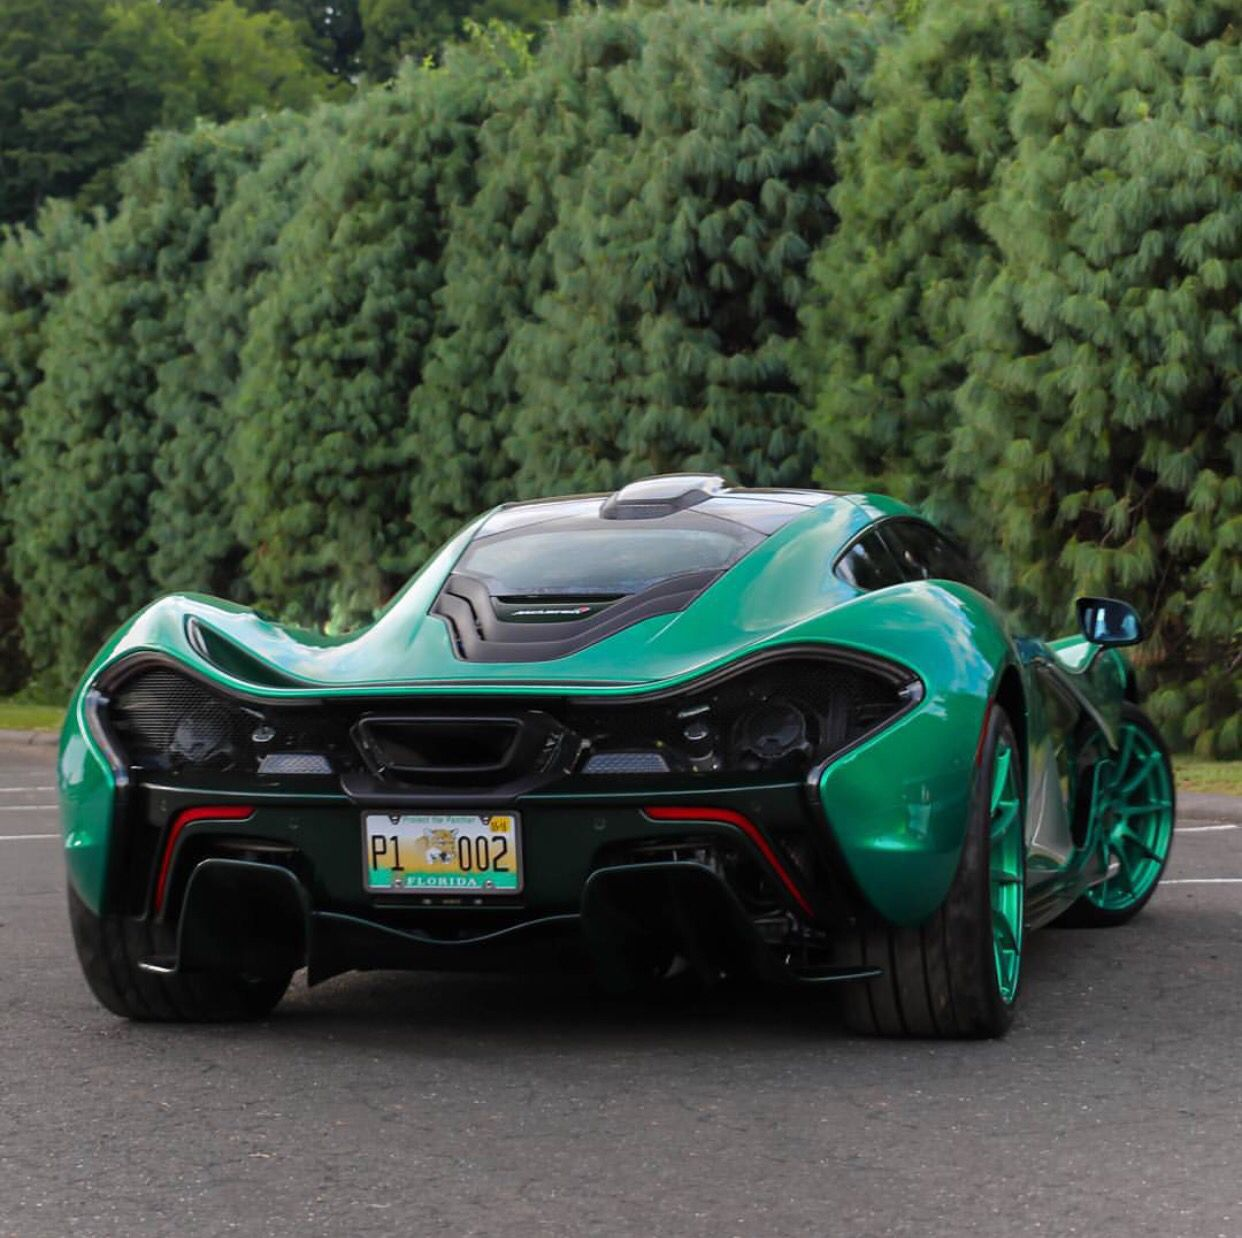 Mclaren P1 Painted In Emerald Green W Exposed Dark Green Carbon Fiber Photo Taken By Northeastmotorcars On Instagram Mclaren P1 Mclaren Carbon Fiber